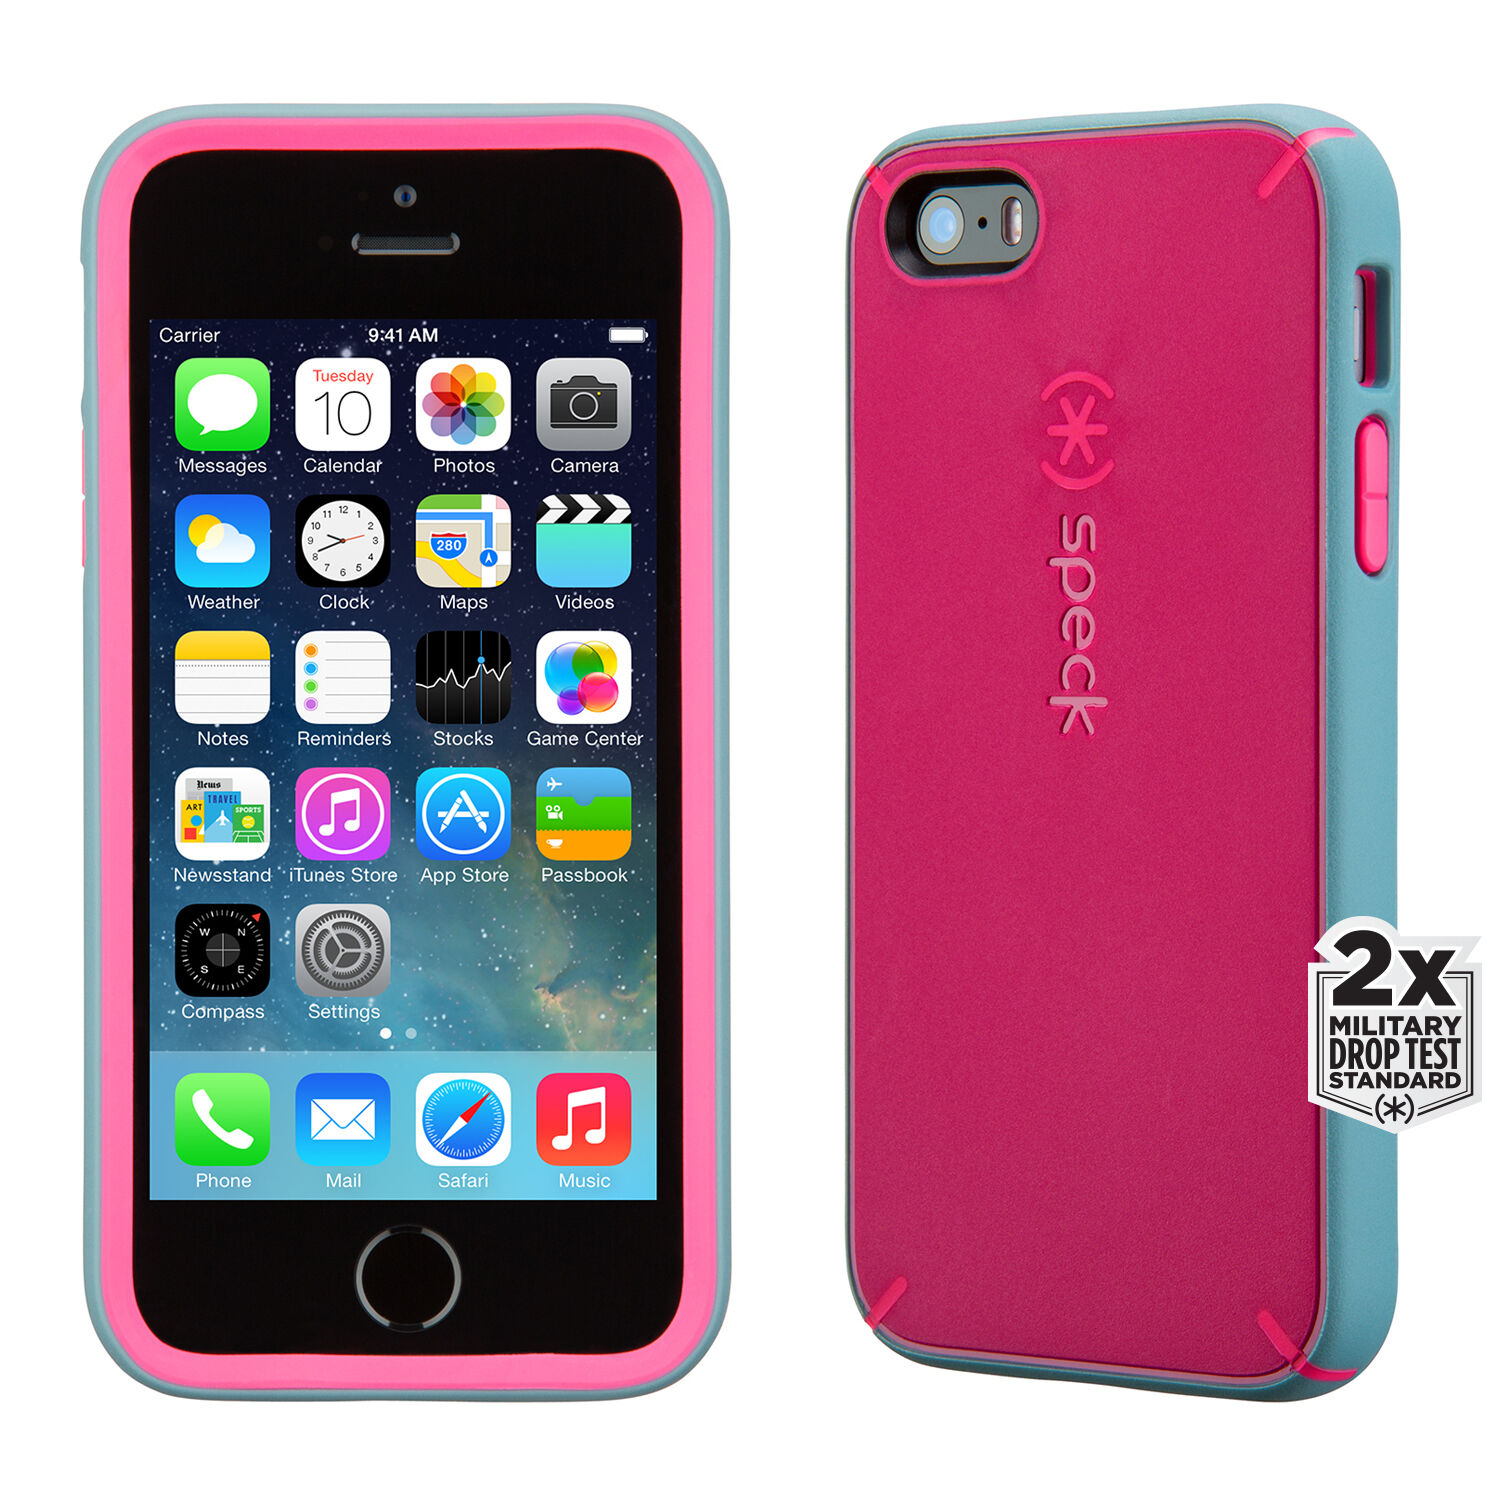 Shop for speck iphone 5 case at Best Buy. Find low everyday prices and buy online for delivery or in-store pick-up.